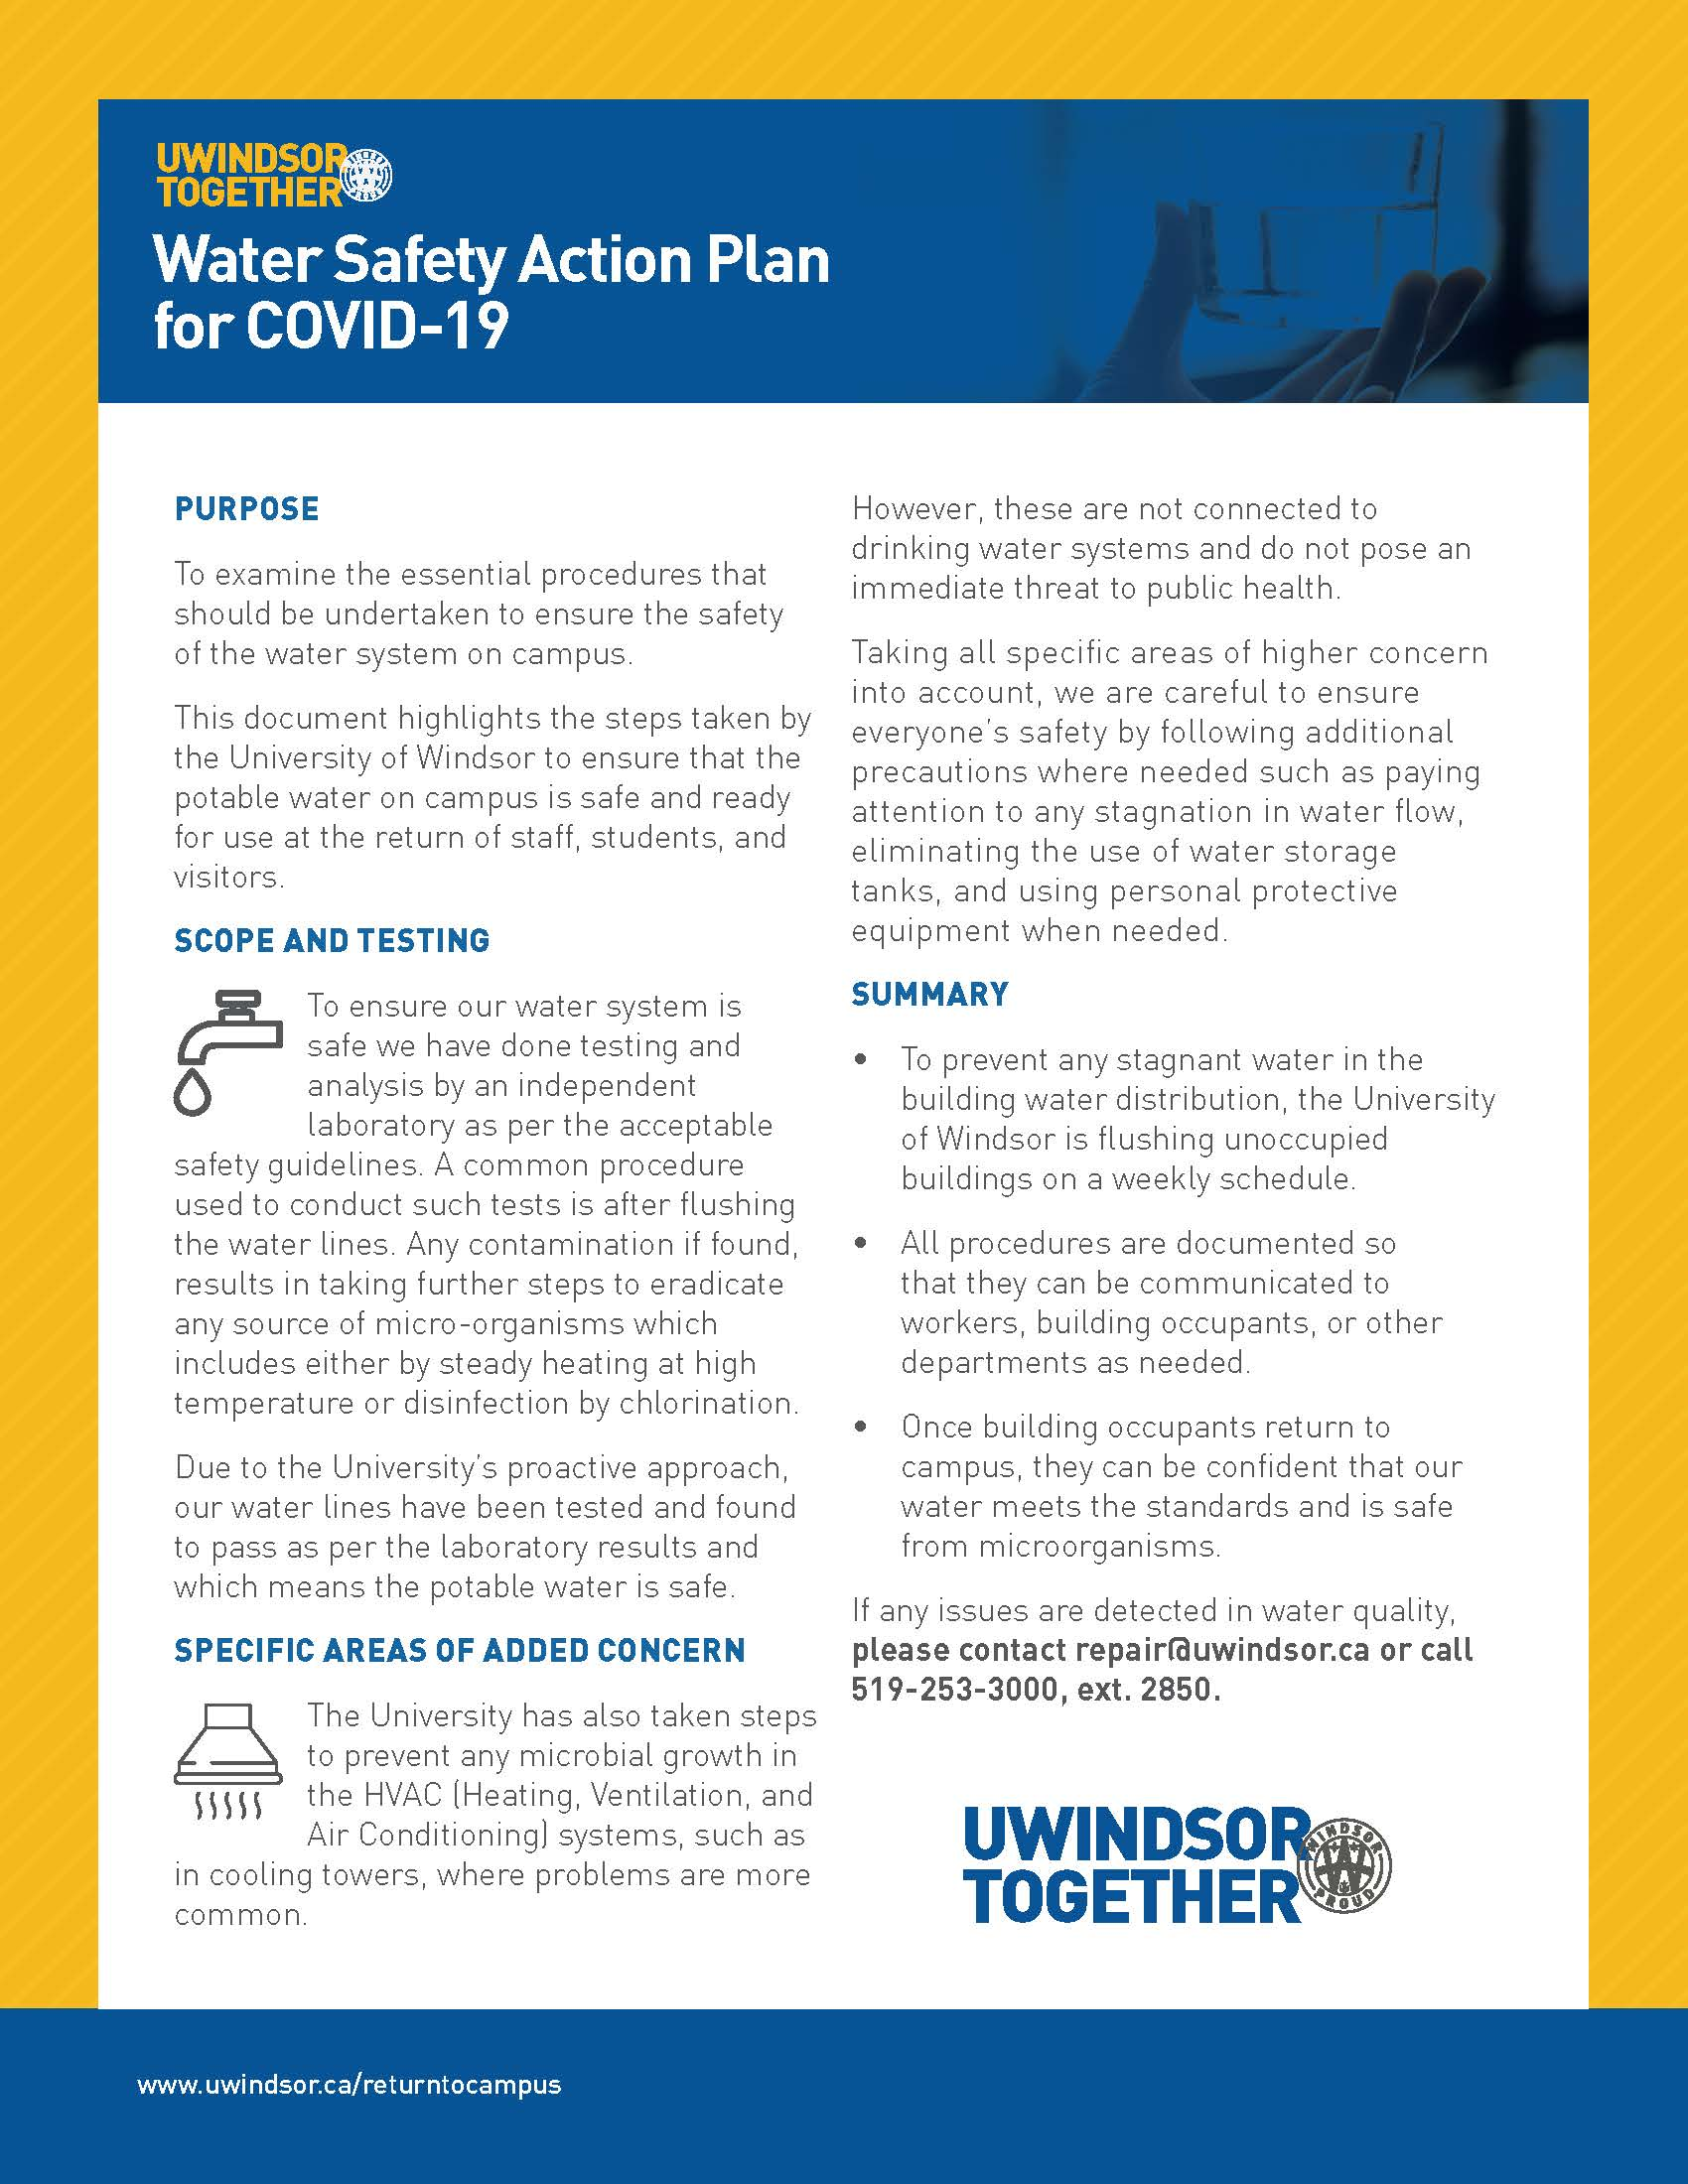 Water Safety Action Plan for COVID-19